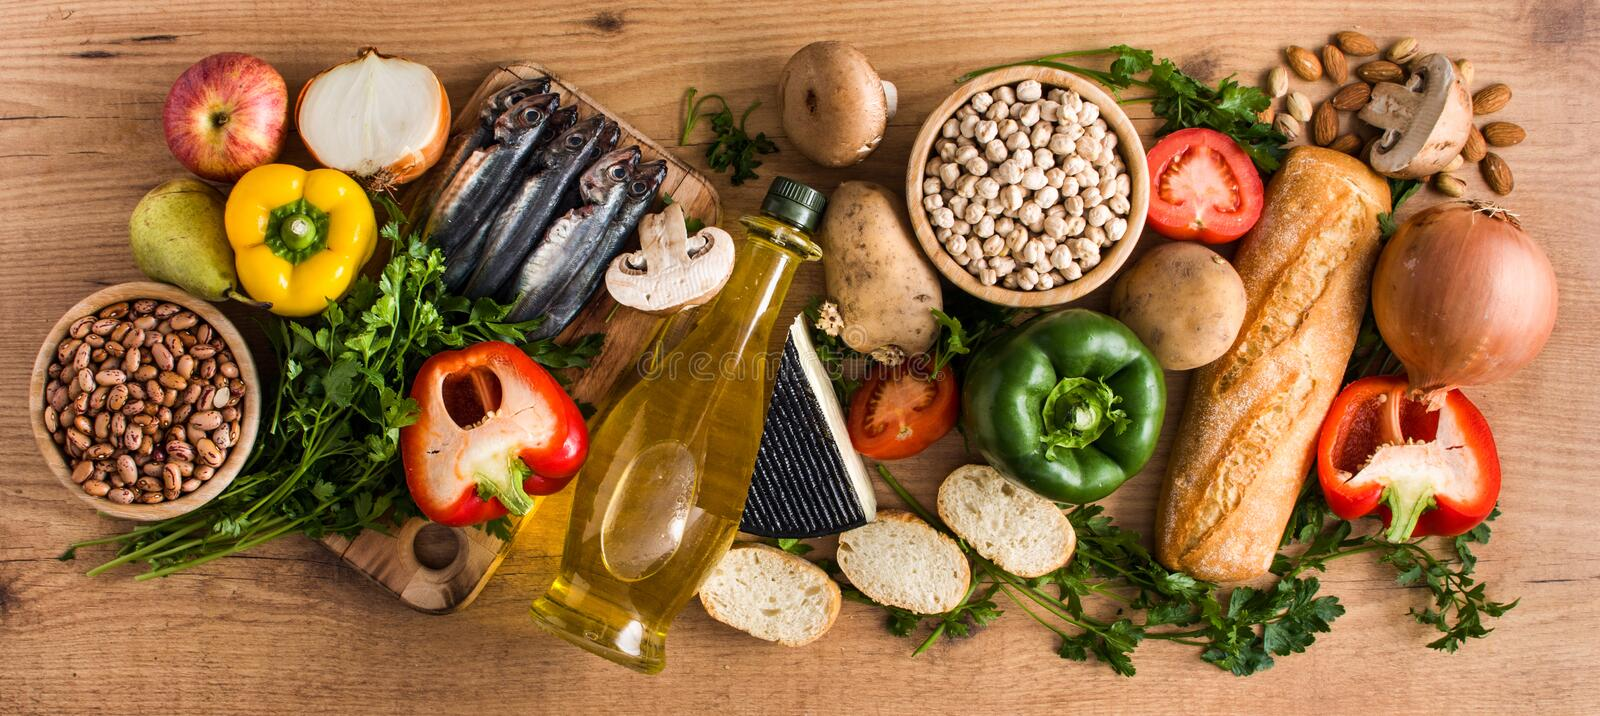 Healthy eating. Mediterranean diet. Fruit,vegetables, grain, nuts olive oil and fish on wood royalty free stock photography